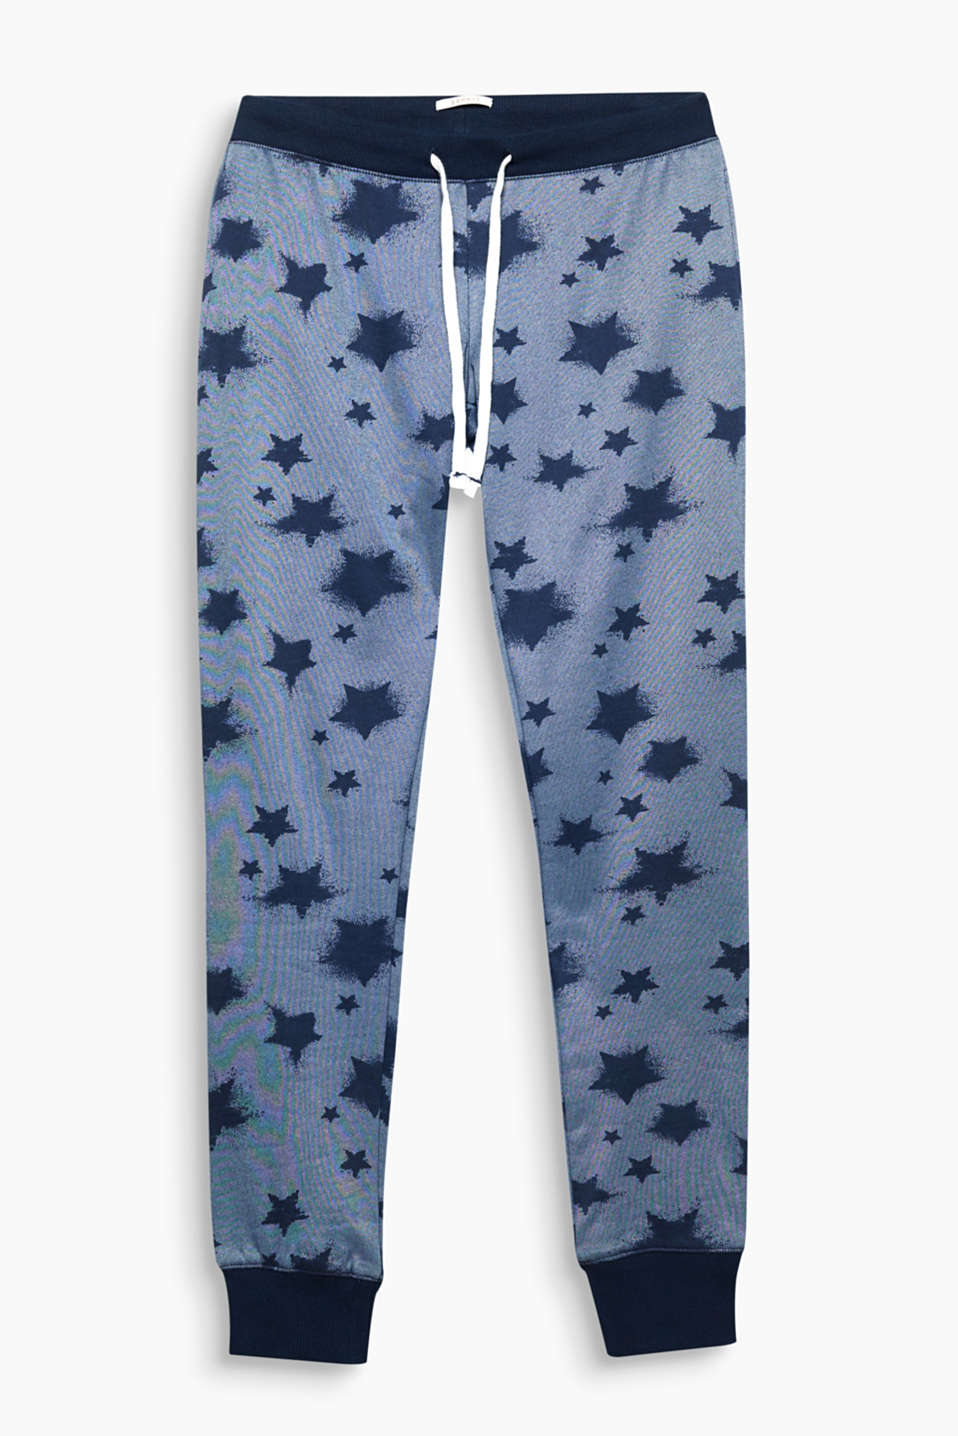 Heavenly print and mega comfy on the inside: the stars and towelling lining make these sweat pants something special!